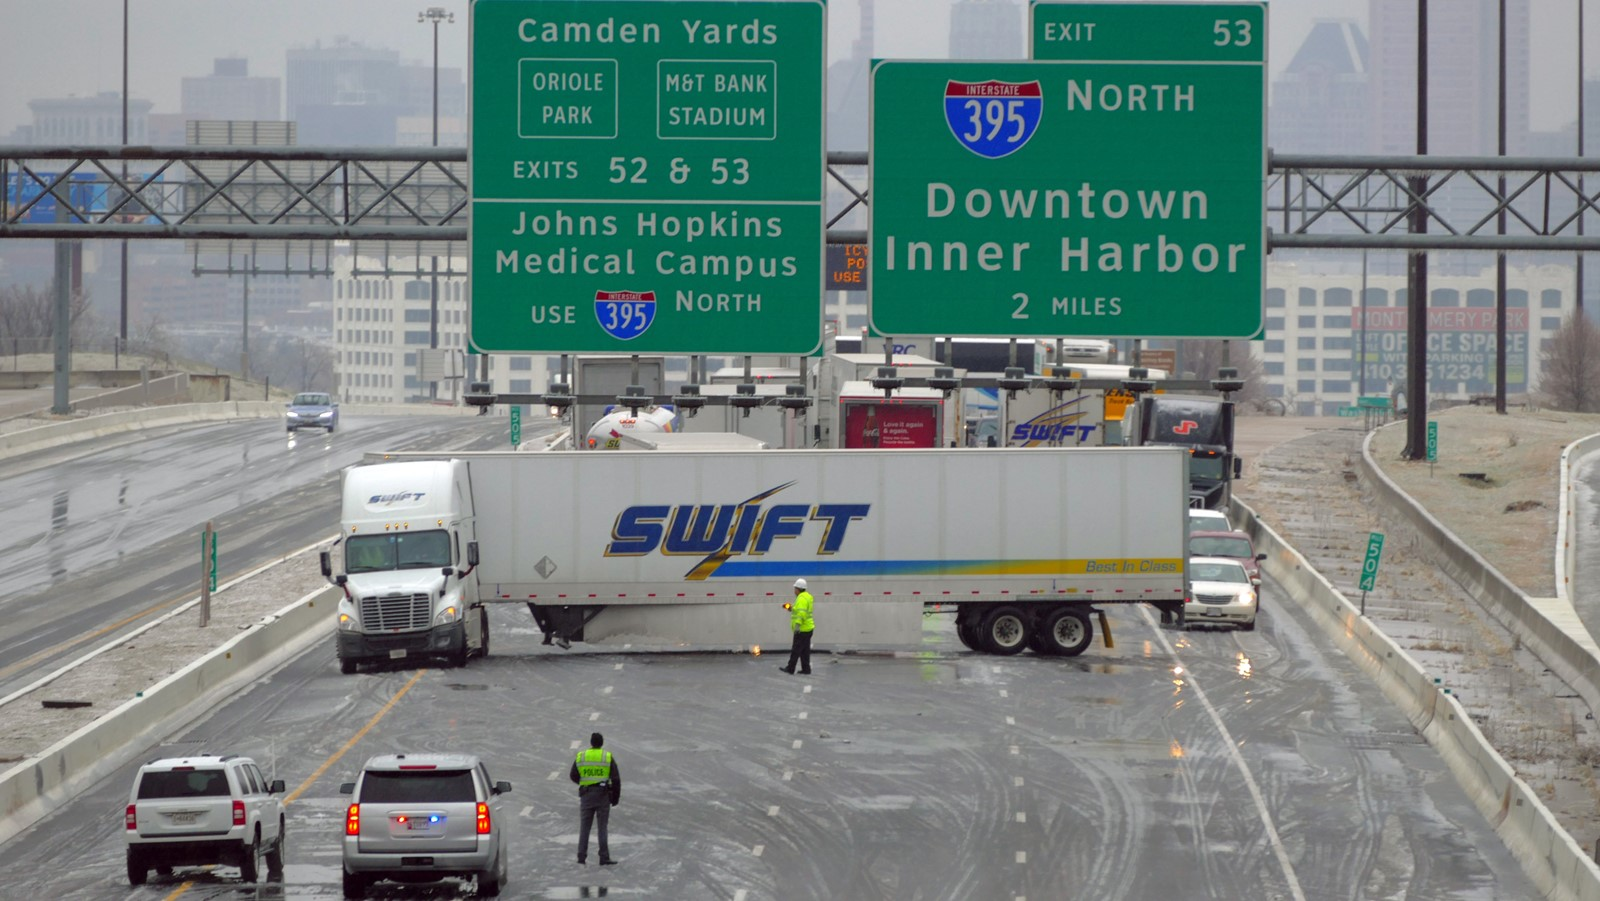 2 dead in fiery crash on I-95 during storm - Baltimore Sun